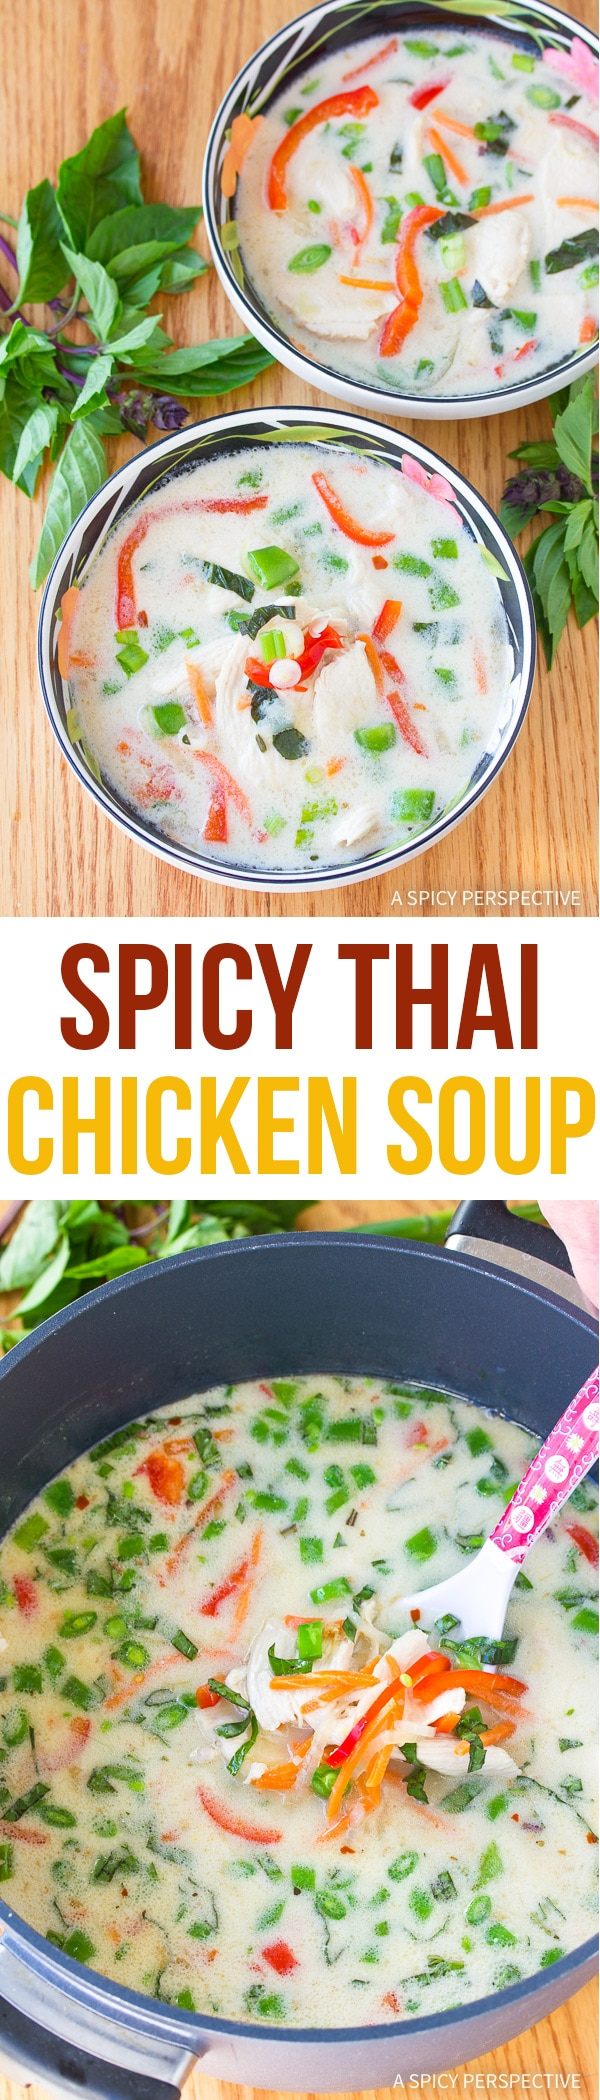 Healthy Spicy Thai Chicken Soup Recipe